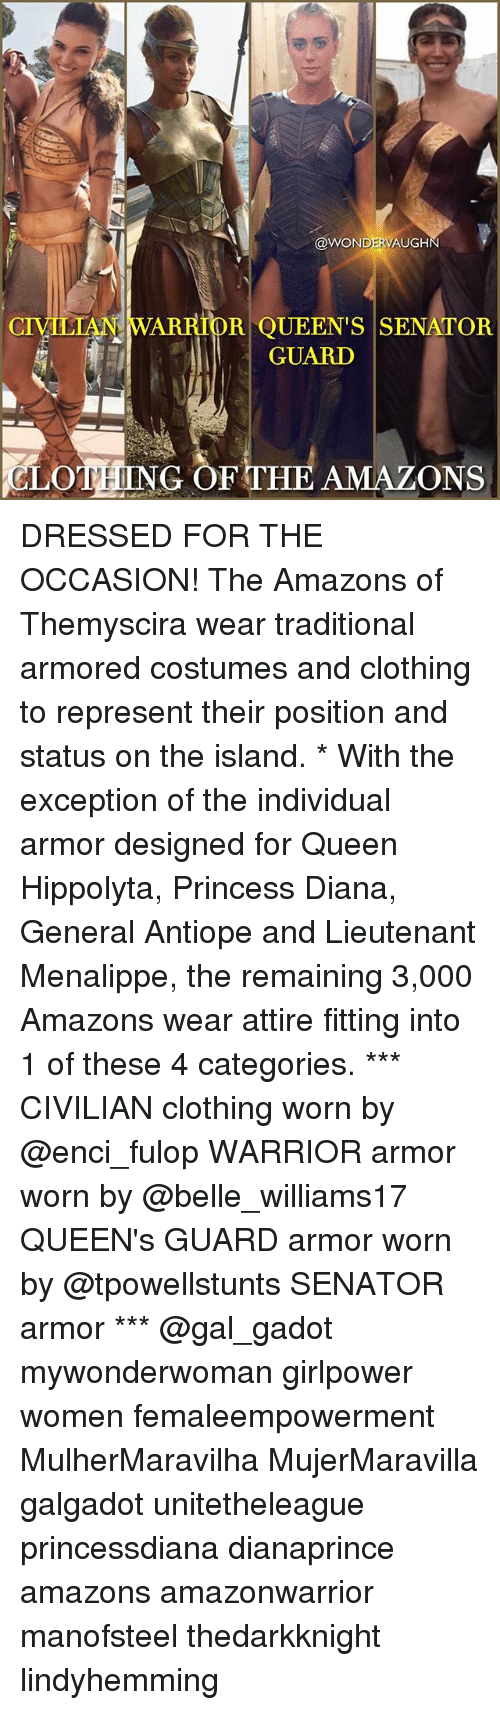 Memes, Queen, and Princess: WOND  AUGHN  CIVILIAN WARRIOR QUEEN'S SENATOR  GUARD  CLOTHING OF THE AMAZONS DRESSED FOR THE OCCASION! The Amazons of Themyscira wear traditional armored costumes and clothing to represent their position and status on the island. * With the exception of the individual armor designed for Queen Hippolyta, Princess Diana, General Antiope and Lieutenant Menalippe, the remaining 3,000 Amazons wear attire fitting into 1 of these 4 categories. *** CIVILIAN clothing worn by @enci_fulop WARRIOR armor worn by @belle_williams17 QUEEN's GUARD armor worn by @tpowellstunts SENATOR armor *** @gal_gadot mywonderwoman girlpower women femaleempowerment MulherMaravilha MujerMaravilla galgadot unitetheleague princessdiana dianaprince amazons amazonwarrior manofsteel thedarkknight lindyhemming